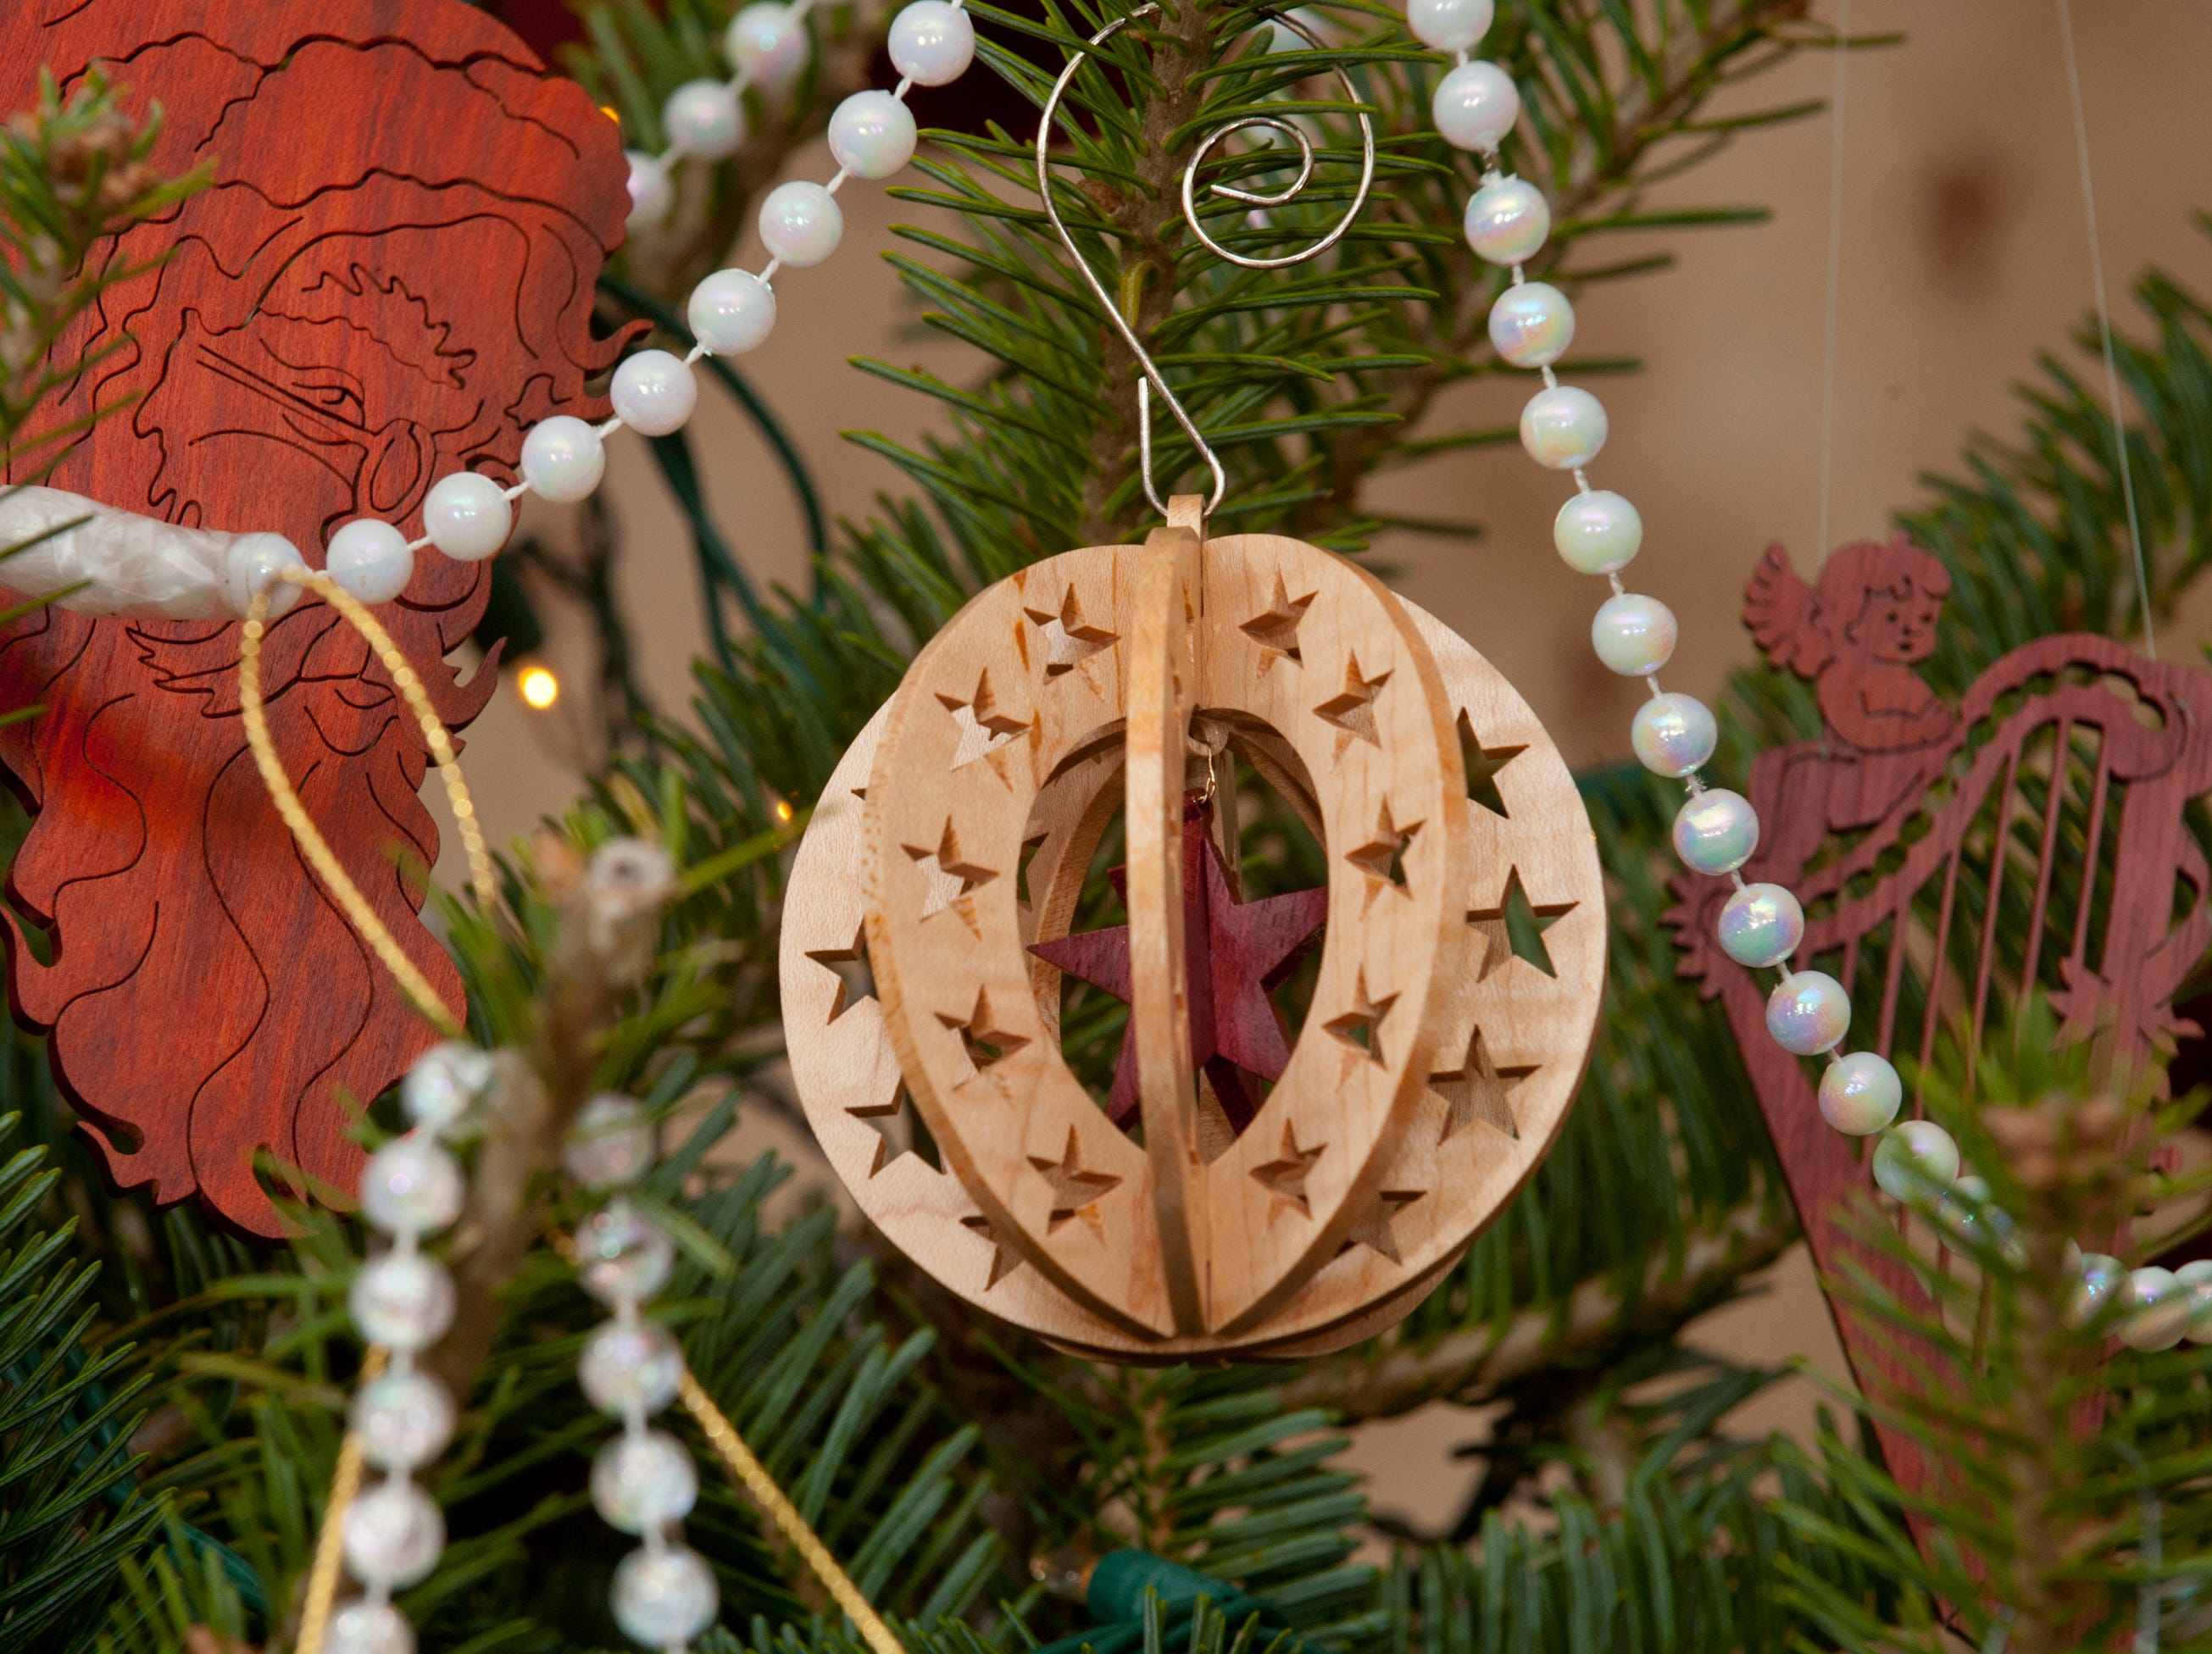 A handmade Christmas ornament made by Chris Clifford, from unstained natural wood.